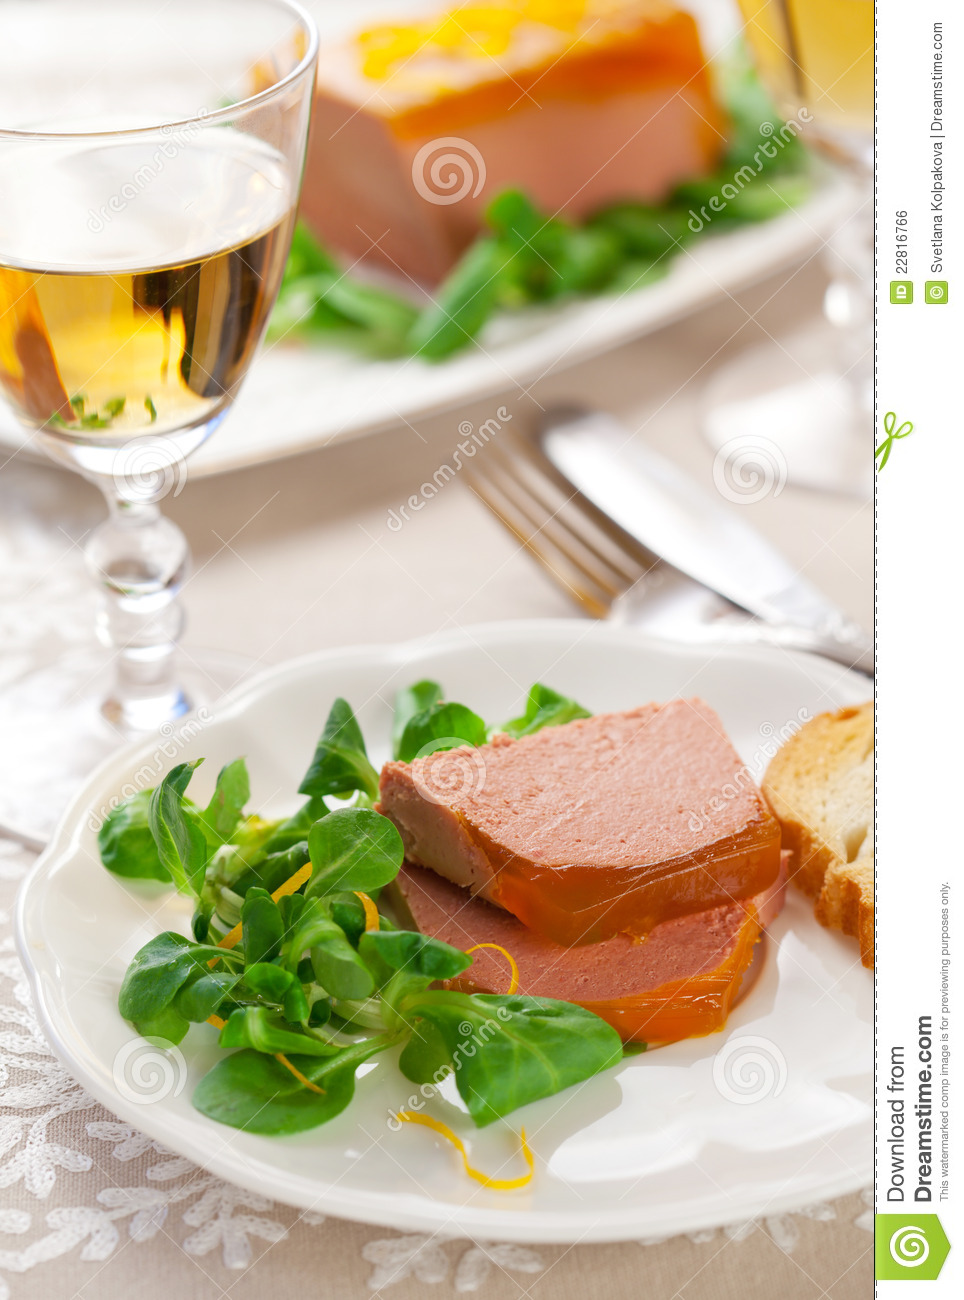 Chicken Liver Pate Royalty Free Stock Image - Image: 22816766